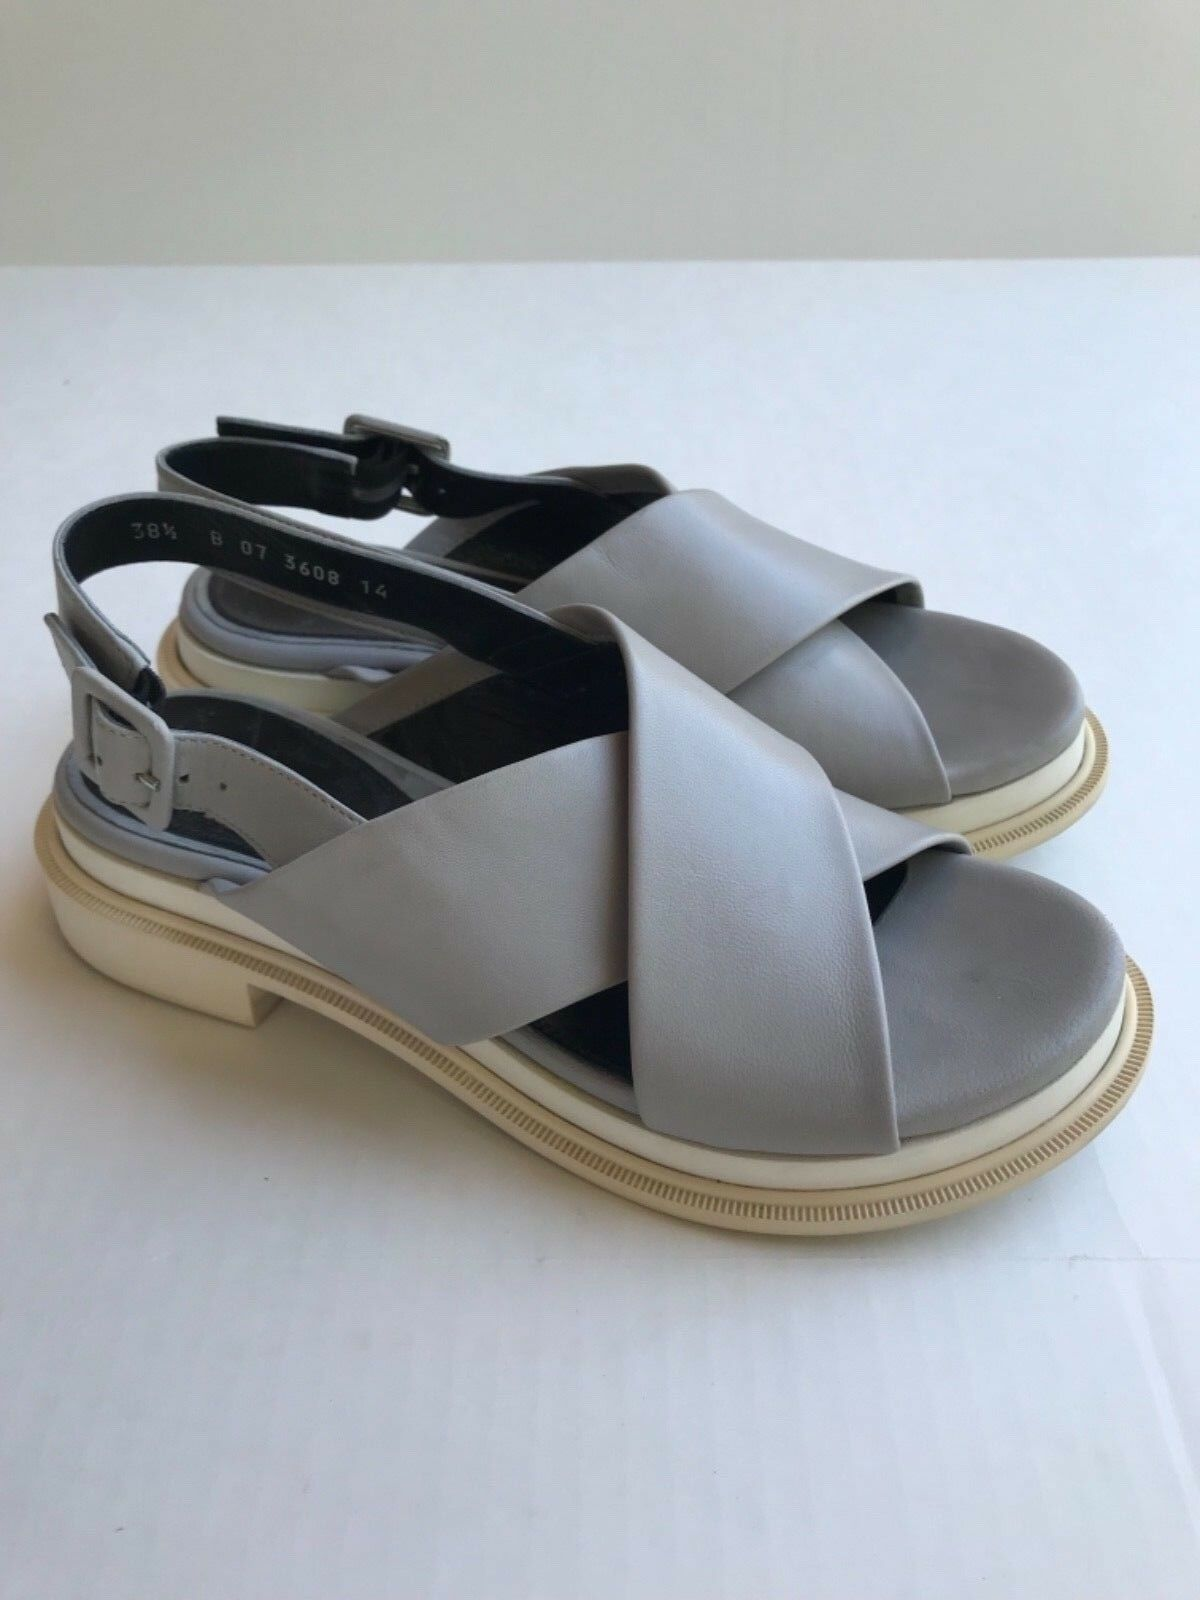 ROBERT CLERGERIE Grey white CALIENTE SANDALS 38.5 7-7.5 France shoes